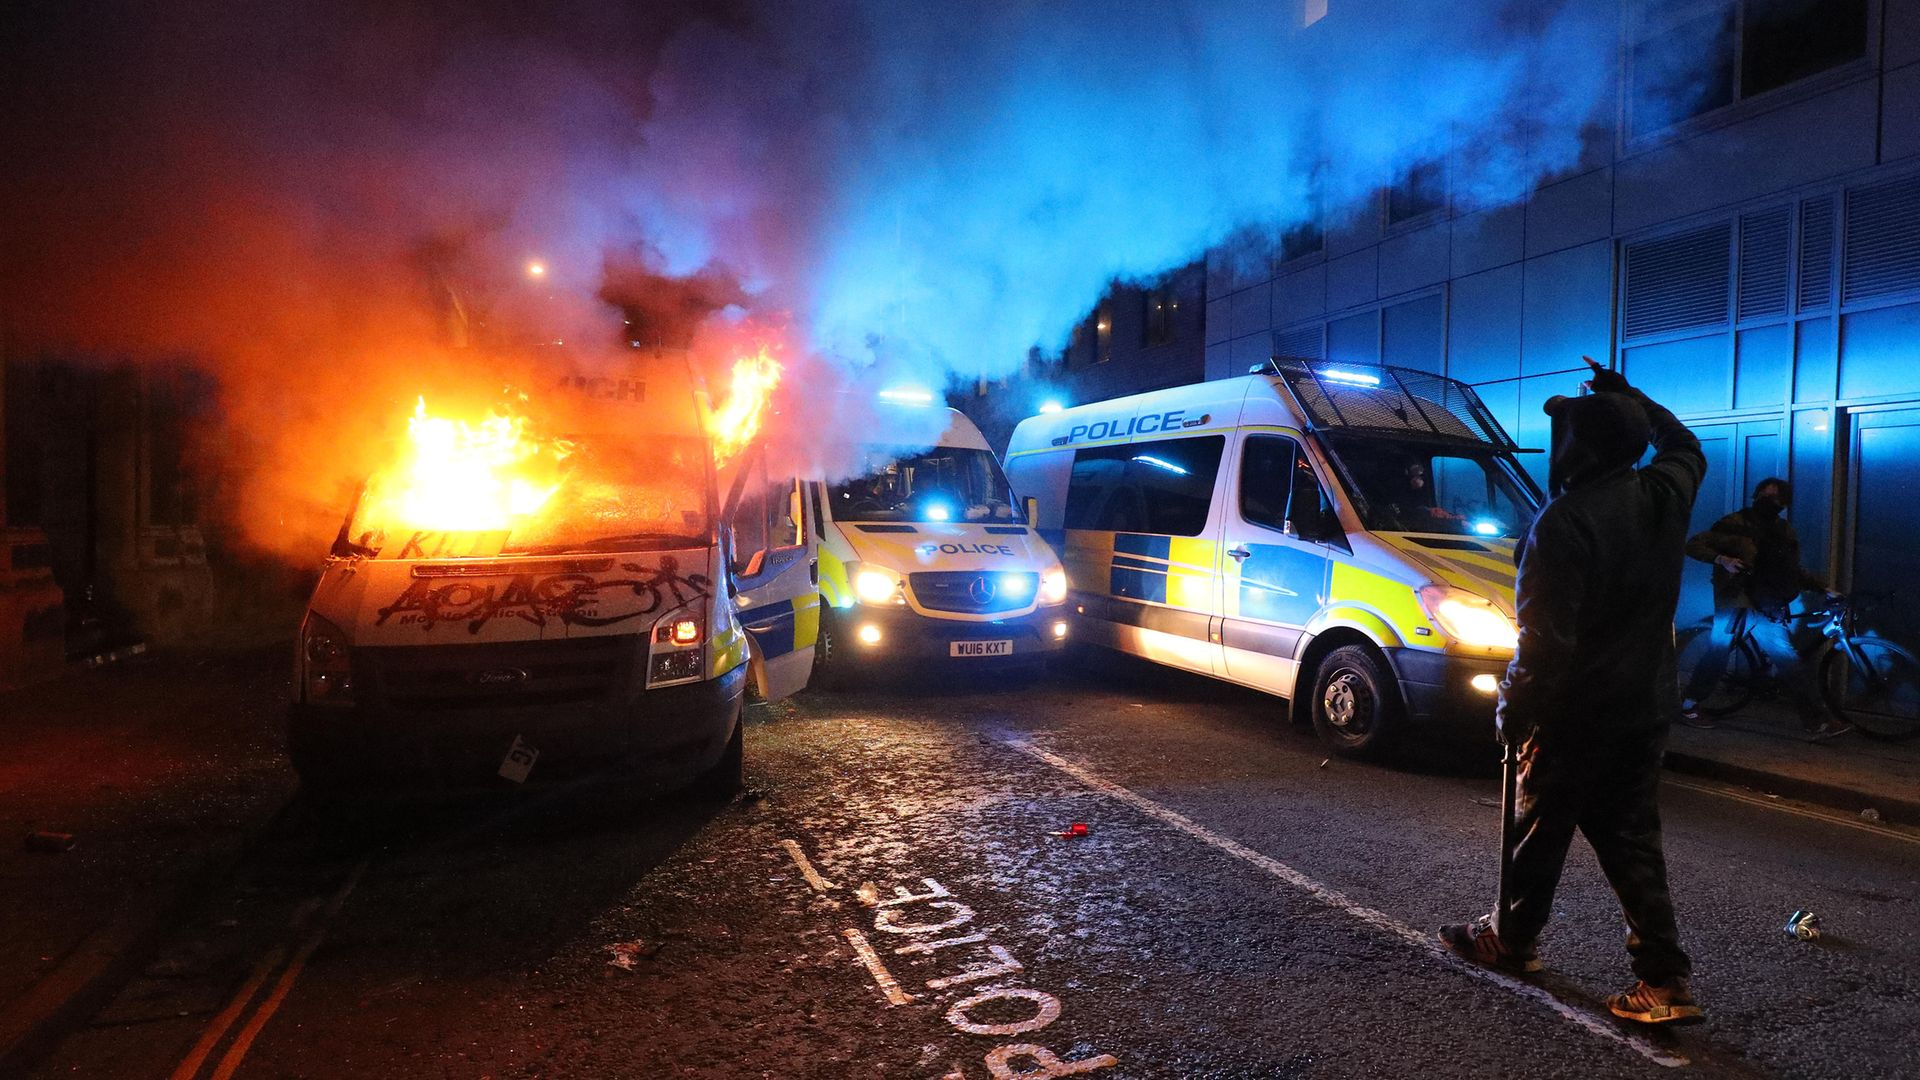 A vandalised police van on fire outside Bridewell Police Station, as other police vehicles arrive after protesters demonstrated against the Government's controversial Police and Crime Bill - Credit: PA